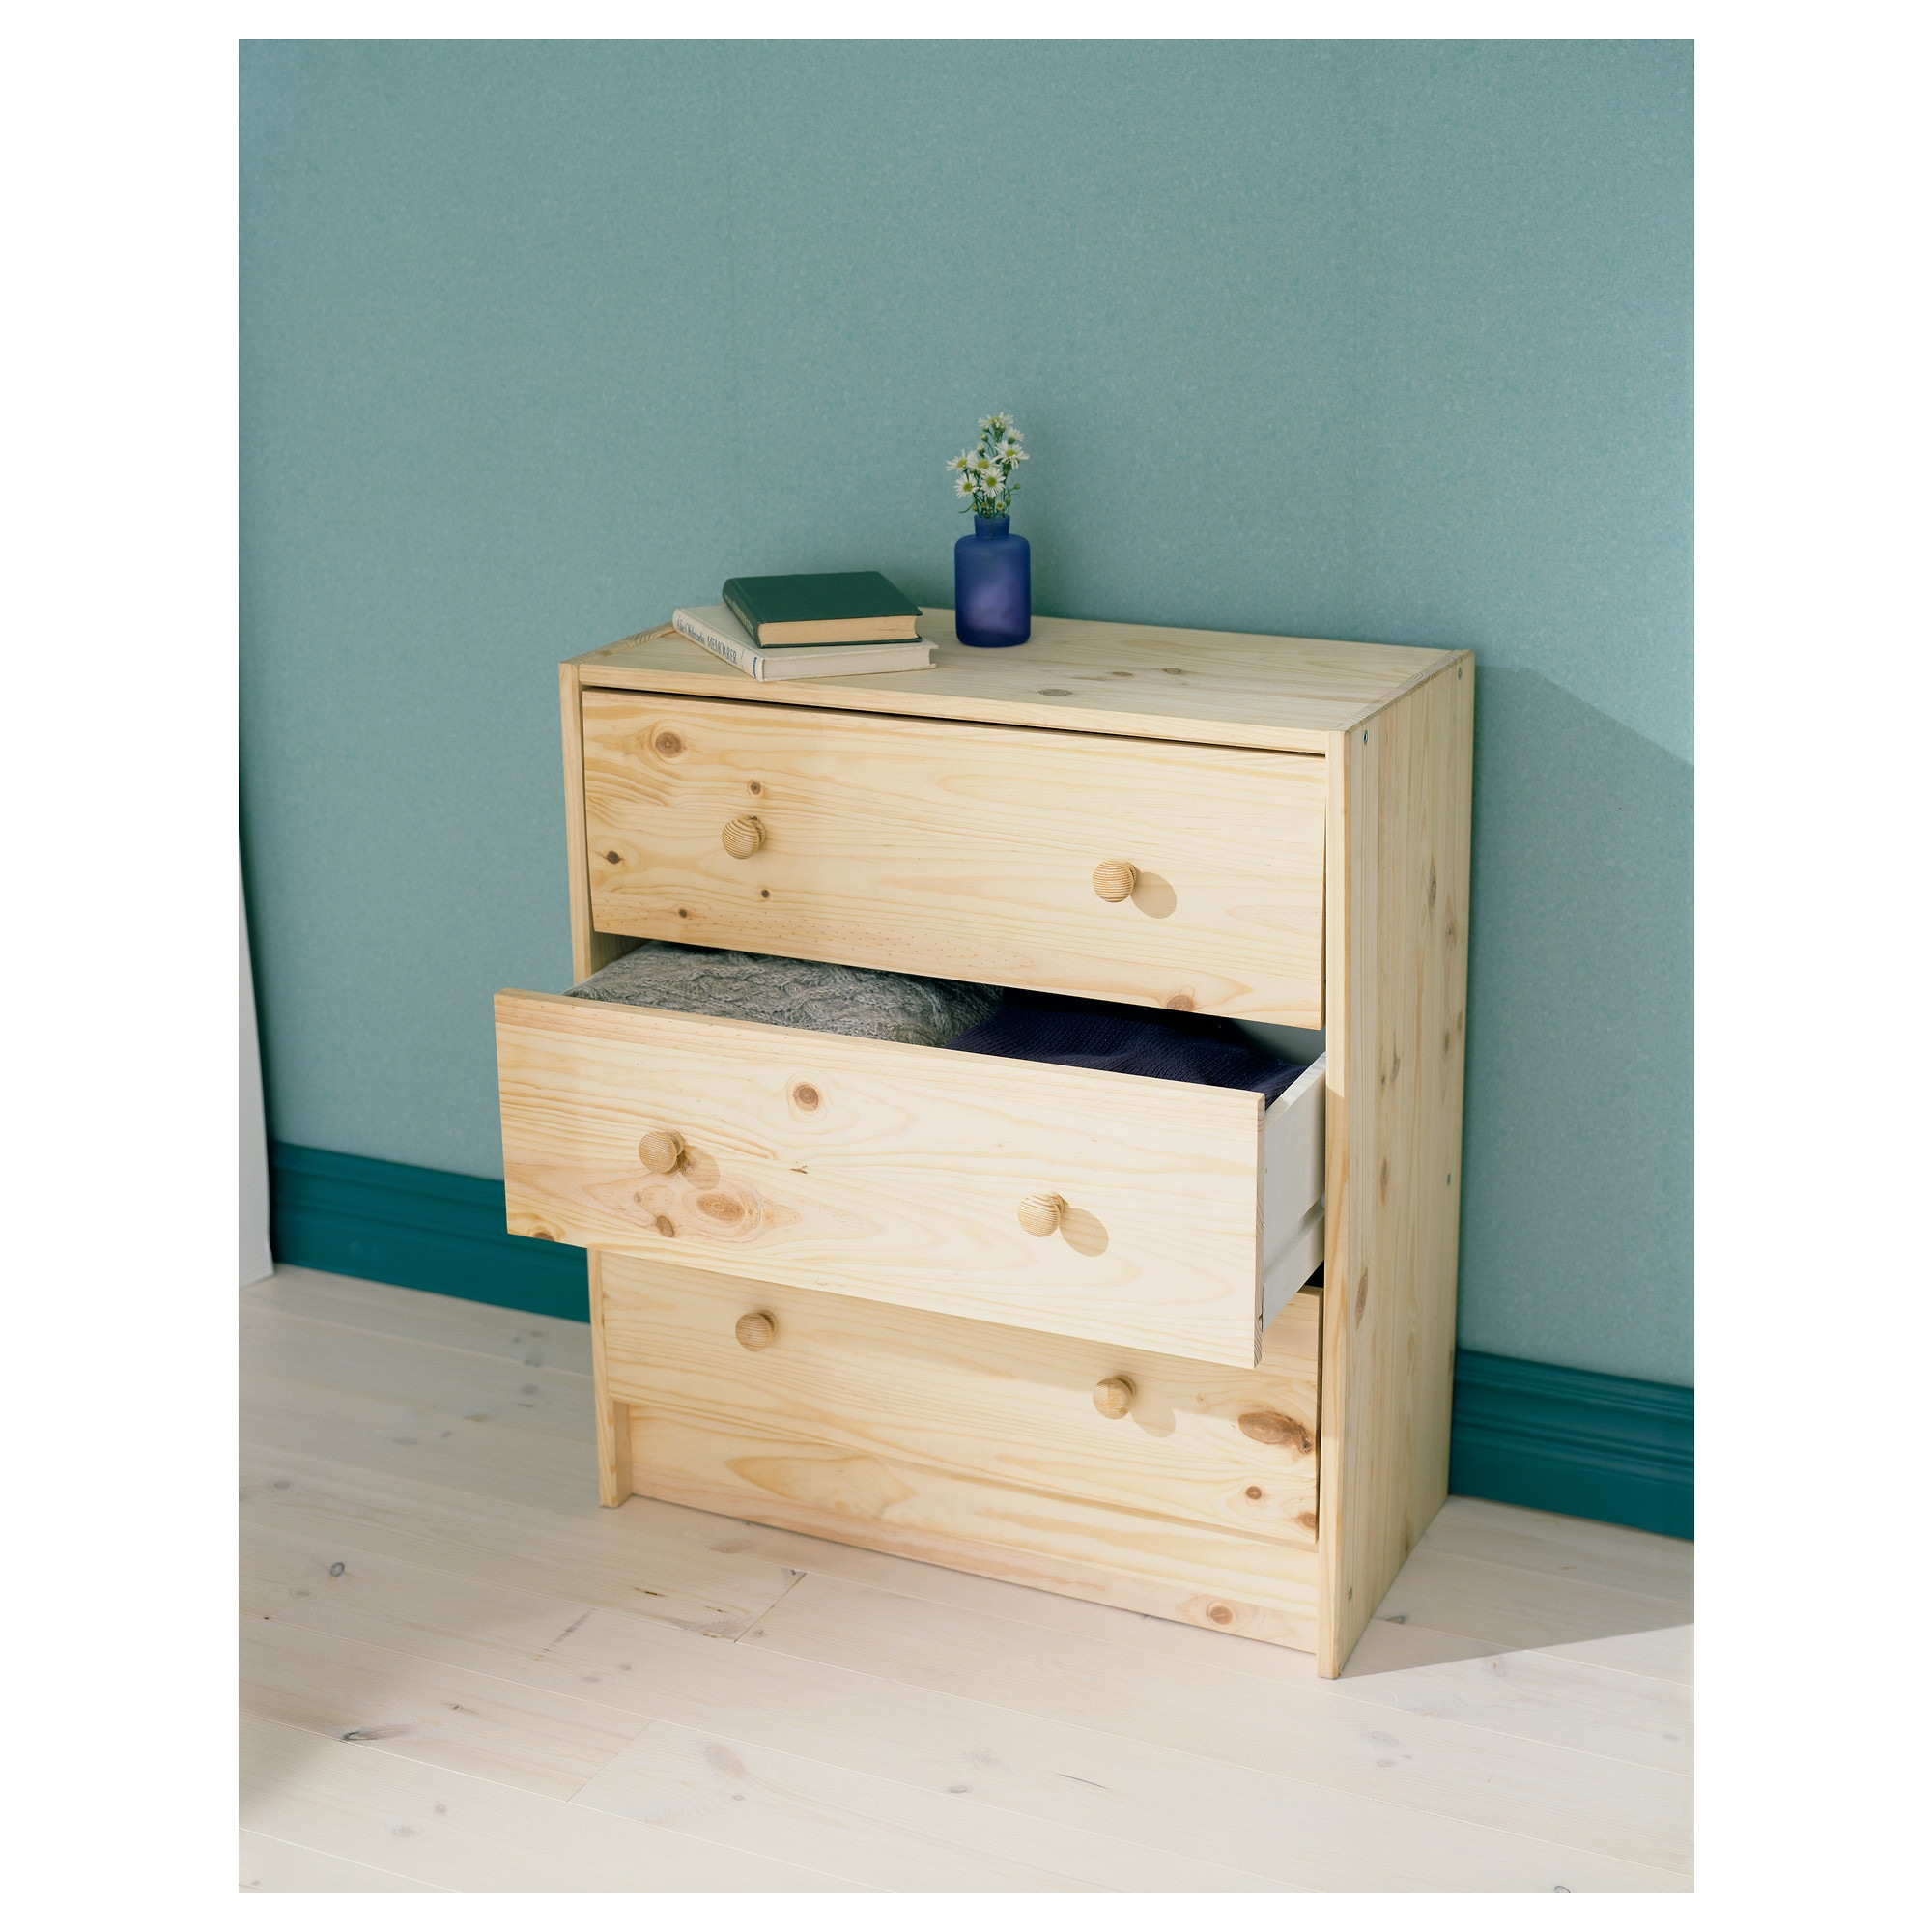 Attractive RAST 3 Drawer Chest   IKEA Home Design Ideas